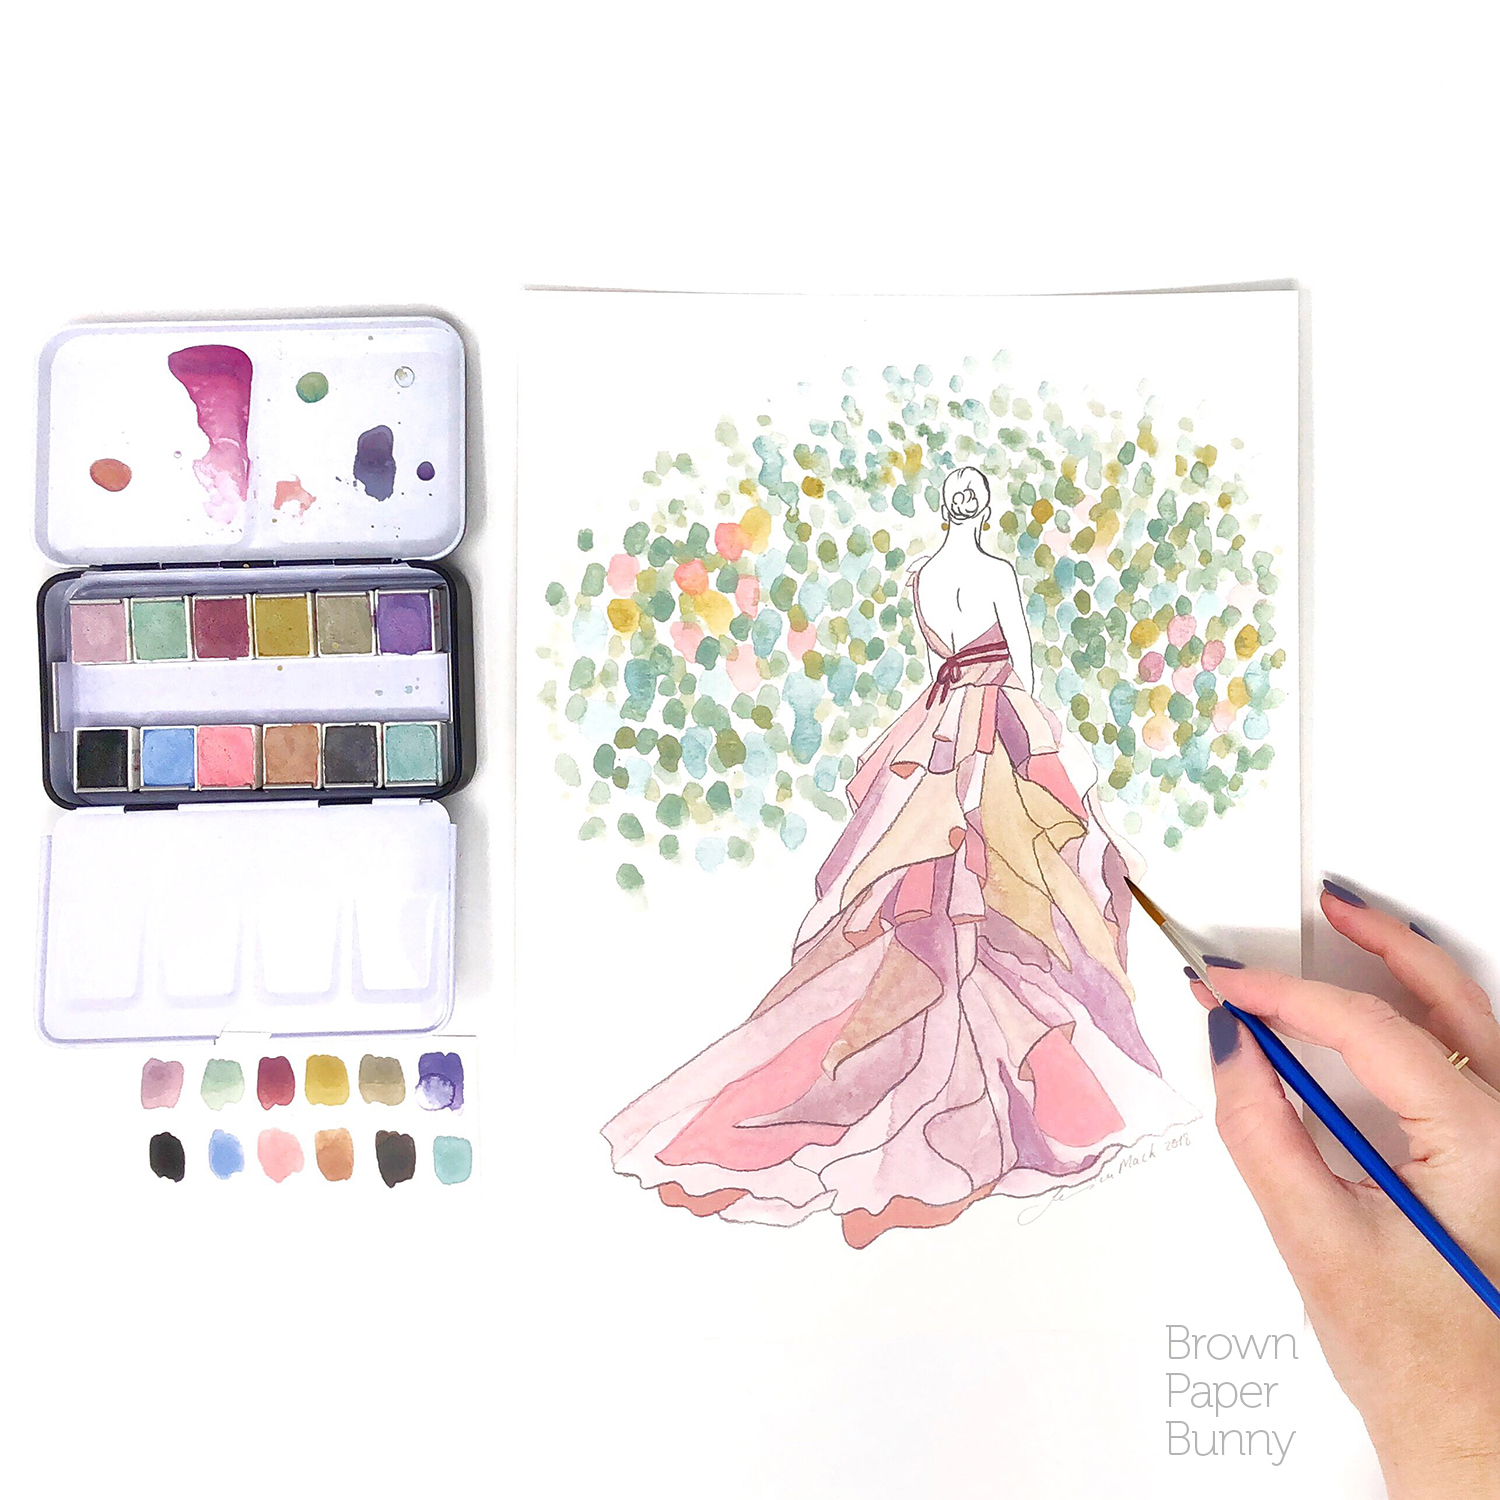 Watercolor created for Prima Watercolors to launch their new Vintage Pastel set.